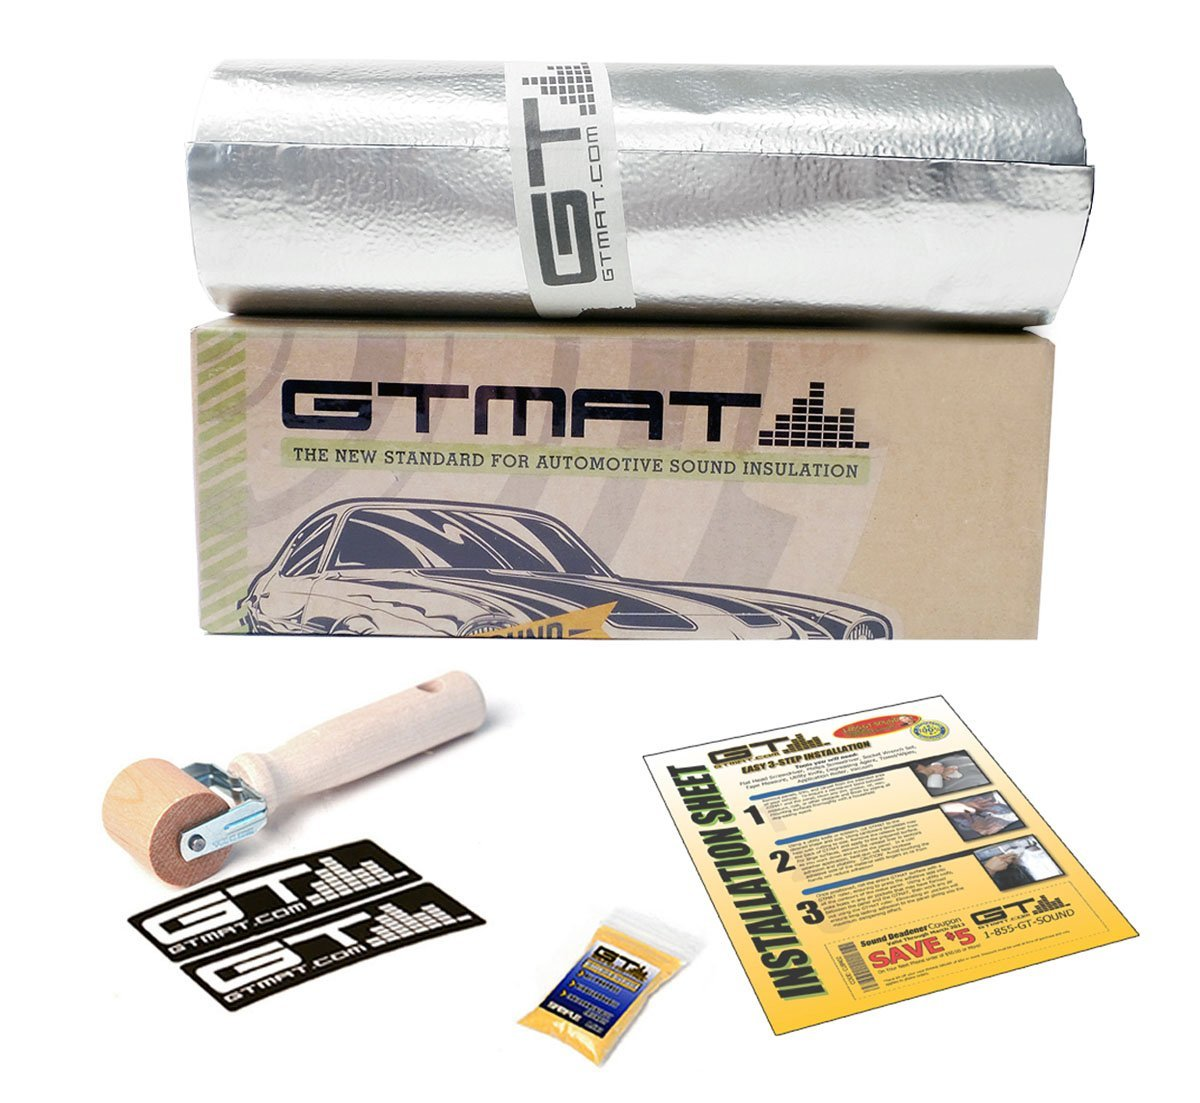 "GTmat Ultra 80mil 8"" Wide Car Automotive Sound Deadener Material Roll Noise Dampener Kit with Wooden Roller - Pick Your Size! (25sqft (8""x38') 80mil Roll)"